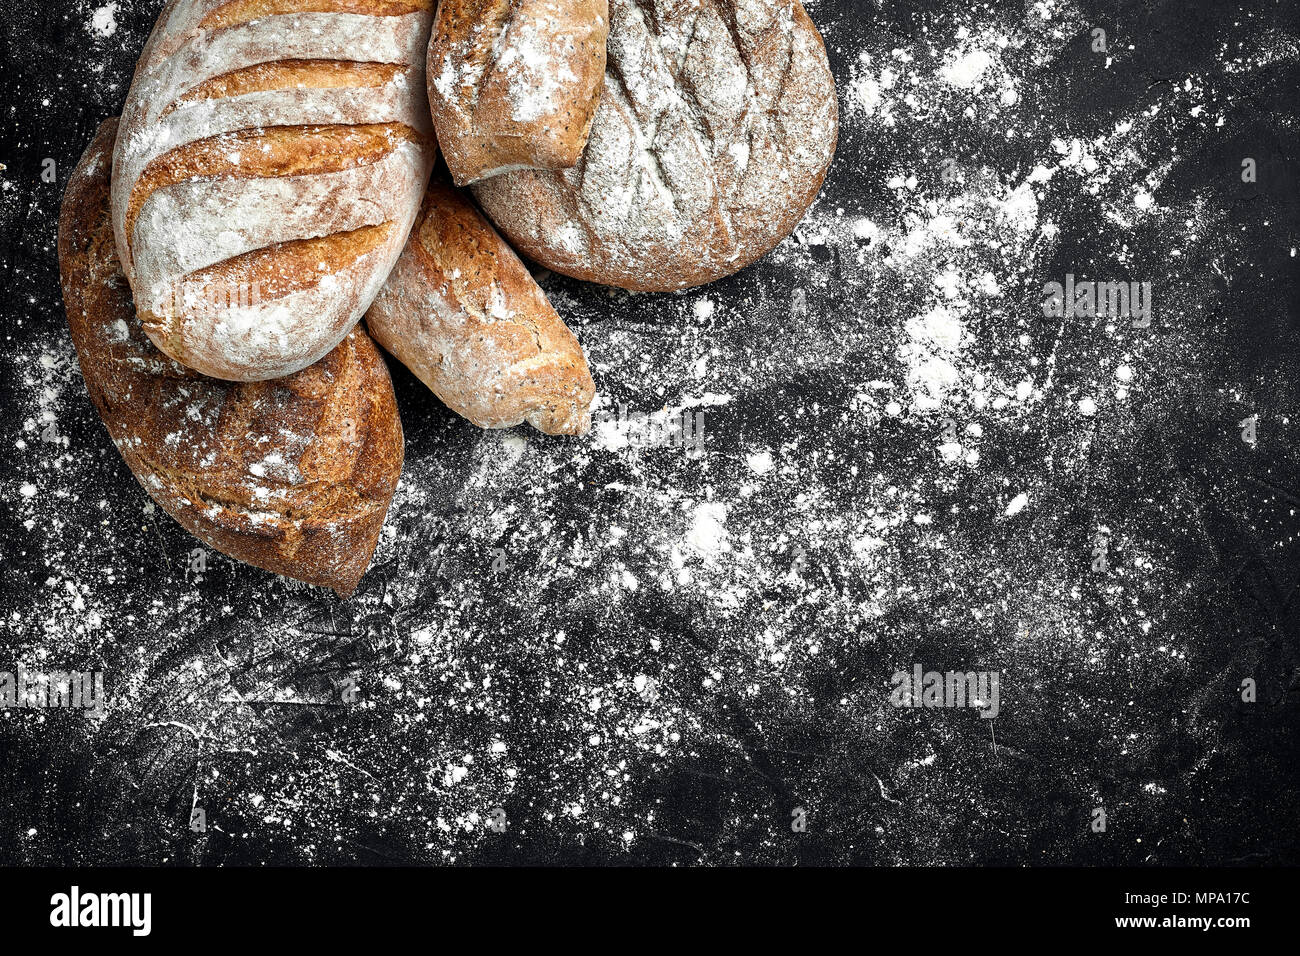 Mixed breads on black table. Top view with copy space. - Stock Image